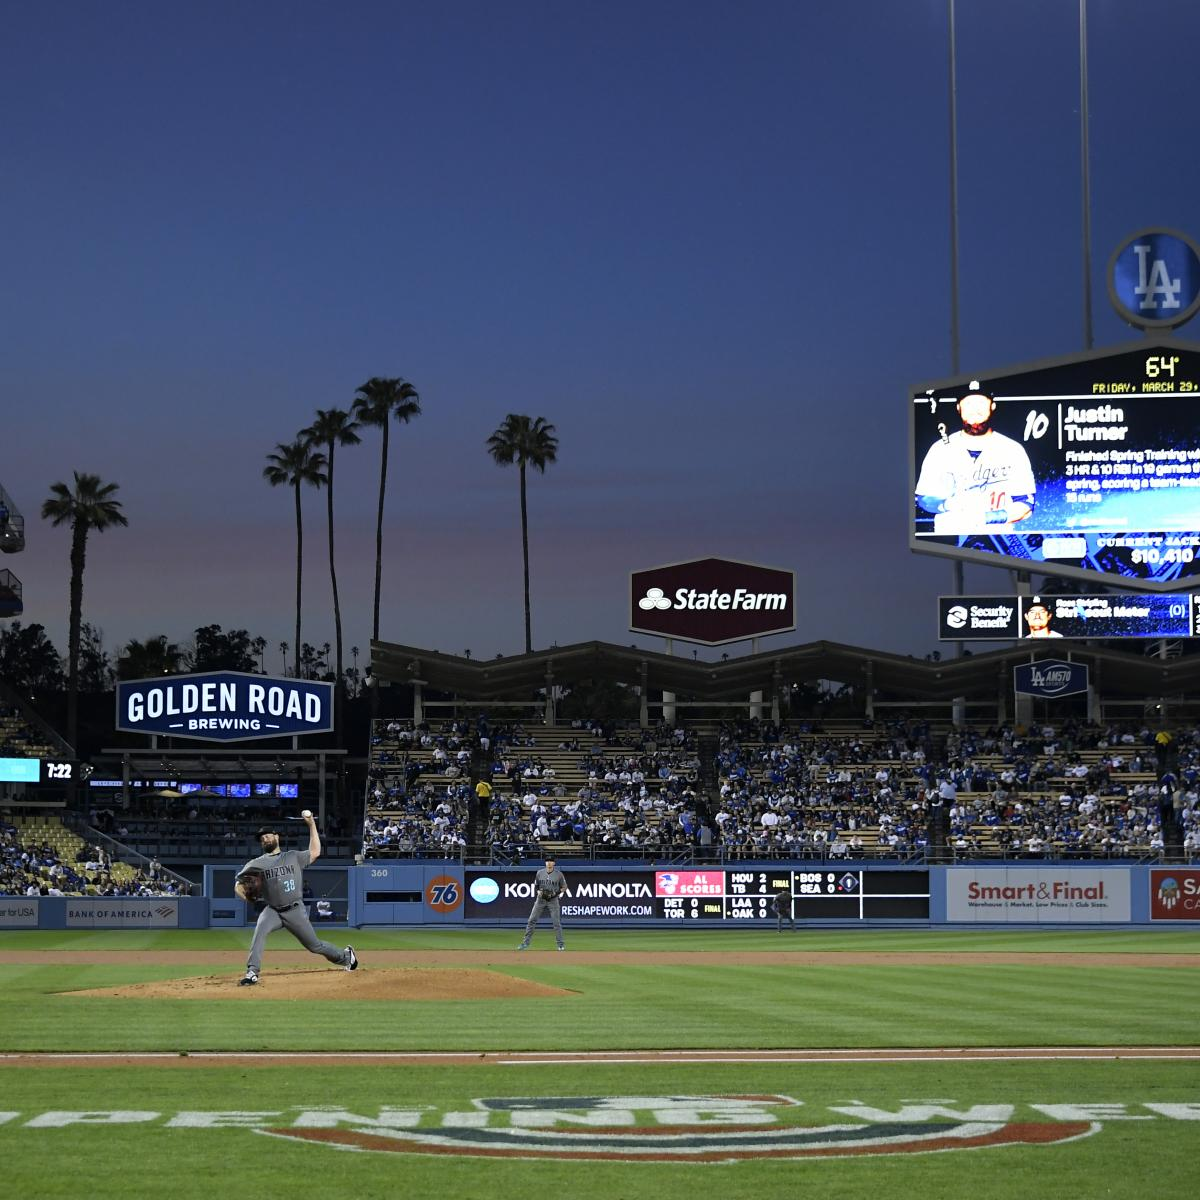 What Time Is The La Dodger Game Today: Rafael Reyna On Life Support After Fight At Dodgers Game